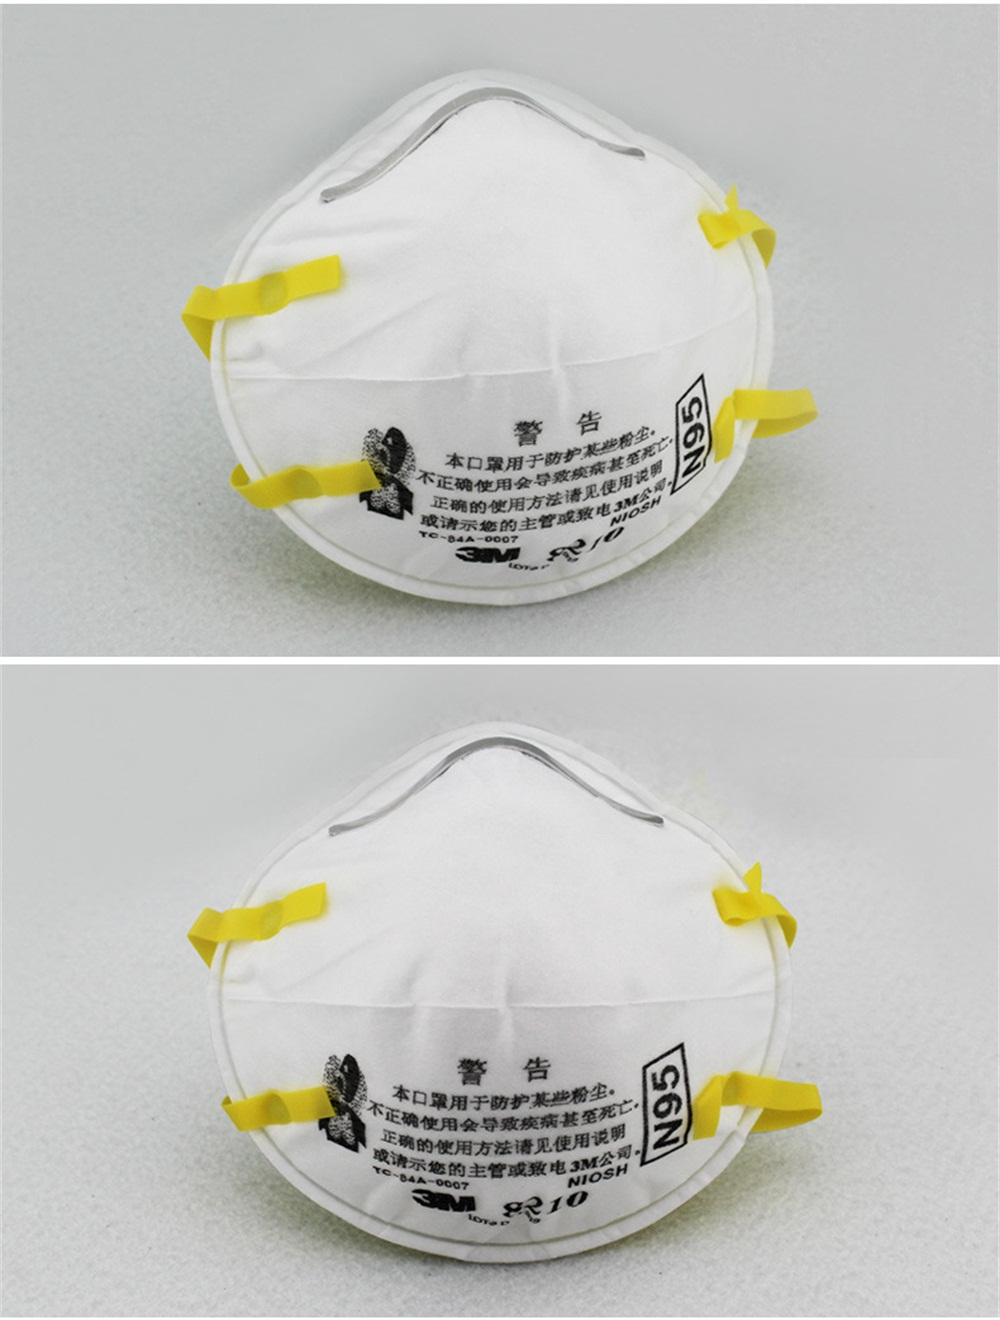 3M 8210 N95 Particulate Respirator NIOSH Approved Disposable Face Mask Box of 20 0